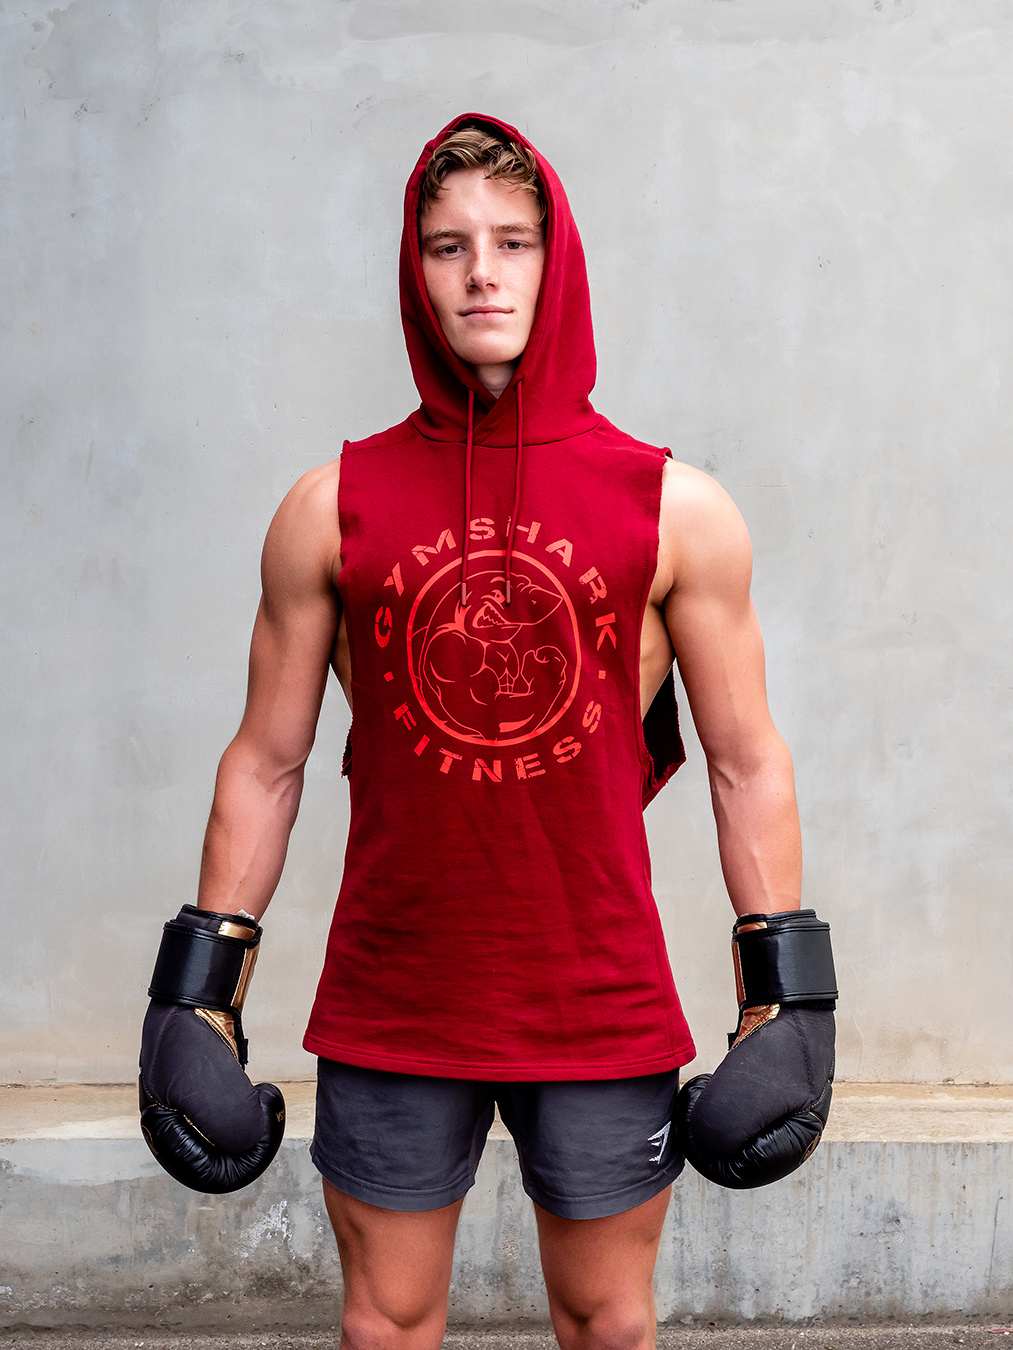 Adelaides young up and coming fitness model Ryan wearing a red gymshark hoodie